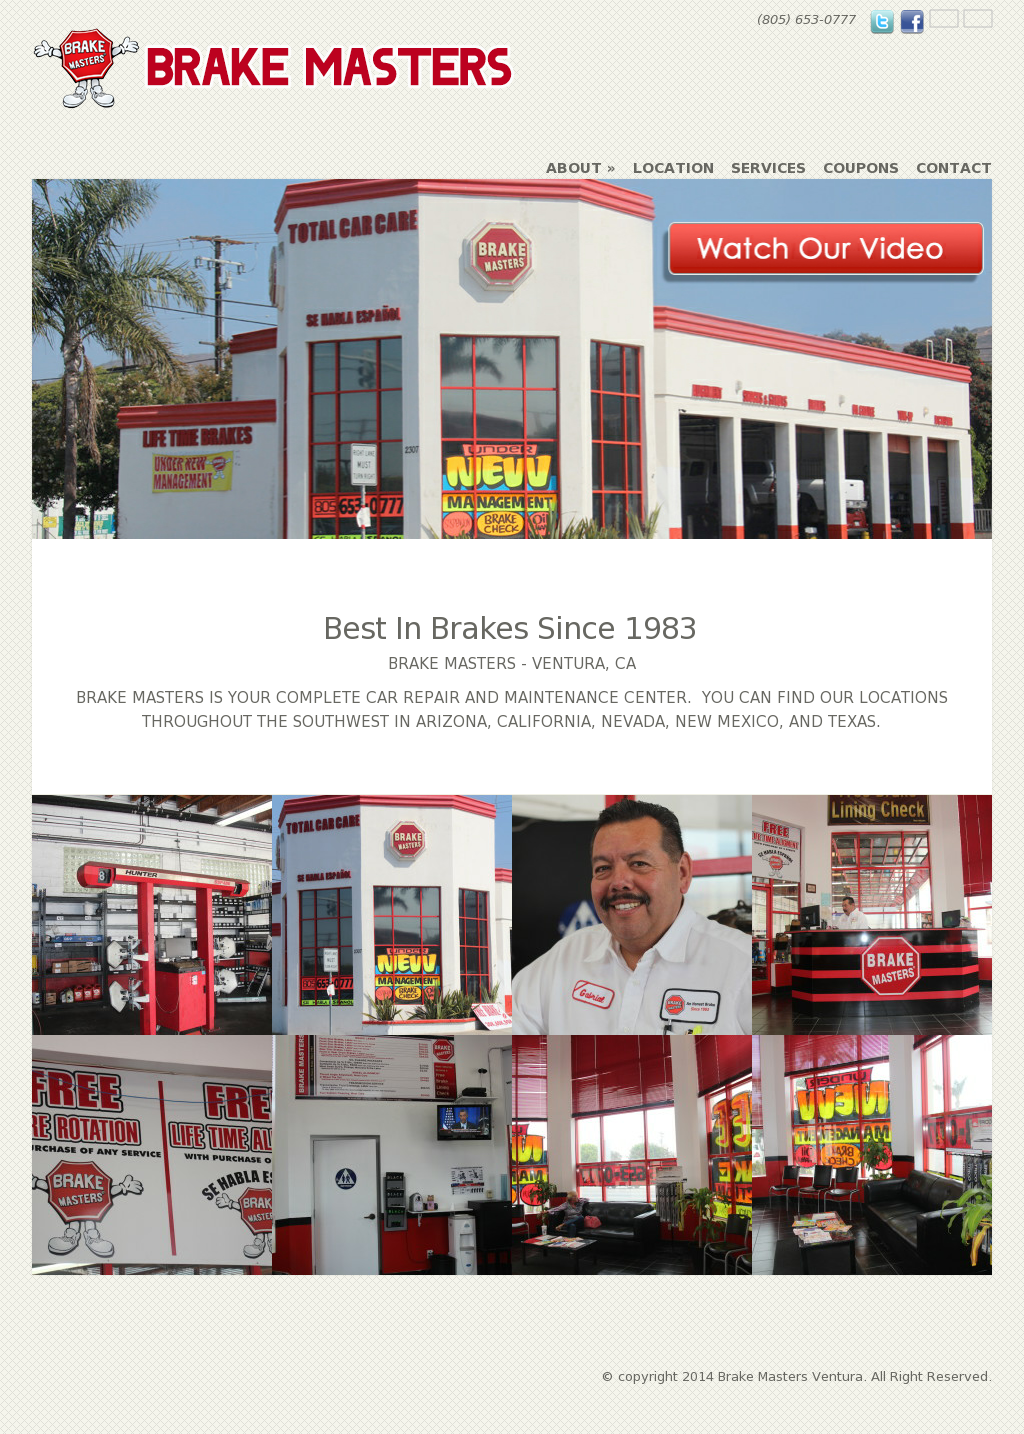 Brake Masters Coupons >> Brake Masters Ventura Competitors Revenue And Employees